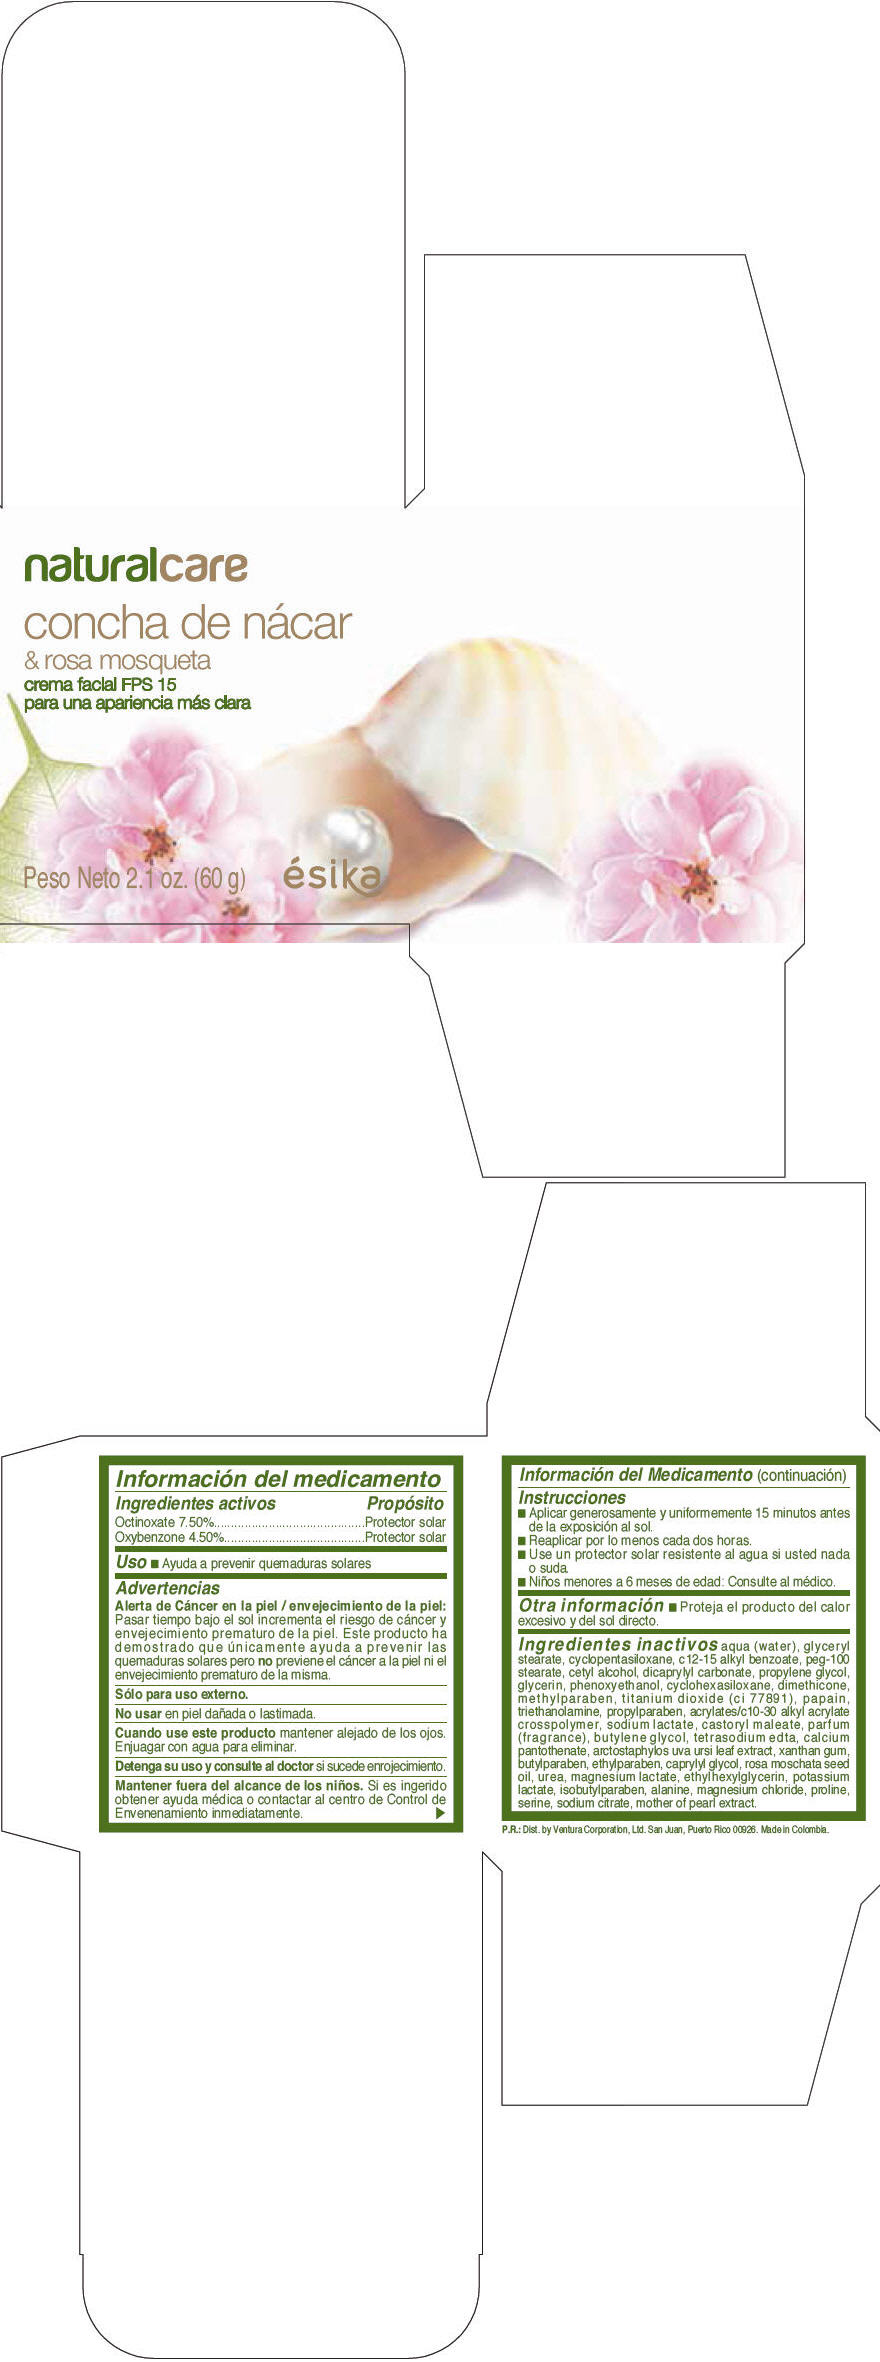 Esika Natural Care Concha De Nacar And Rosa Mosqueta Facial Fps 15 (Octinoxate And Oxybenzone) Cream [Ventura Corporation Ltd]